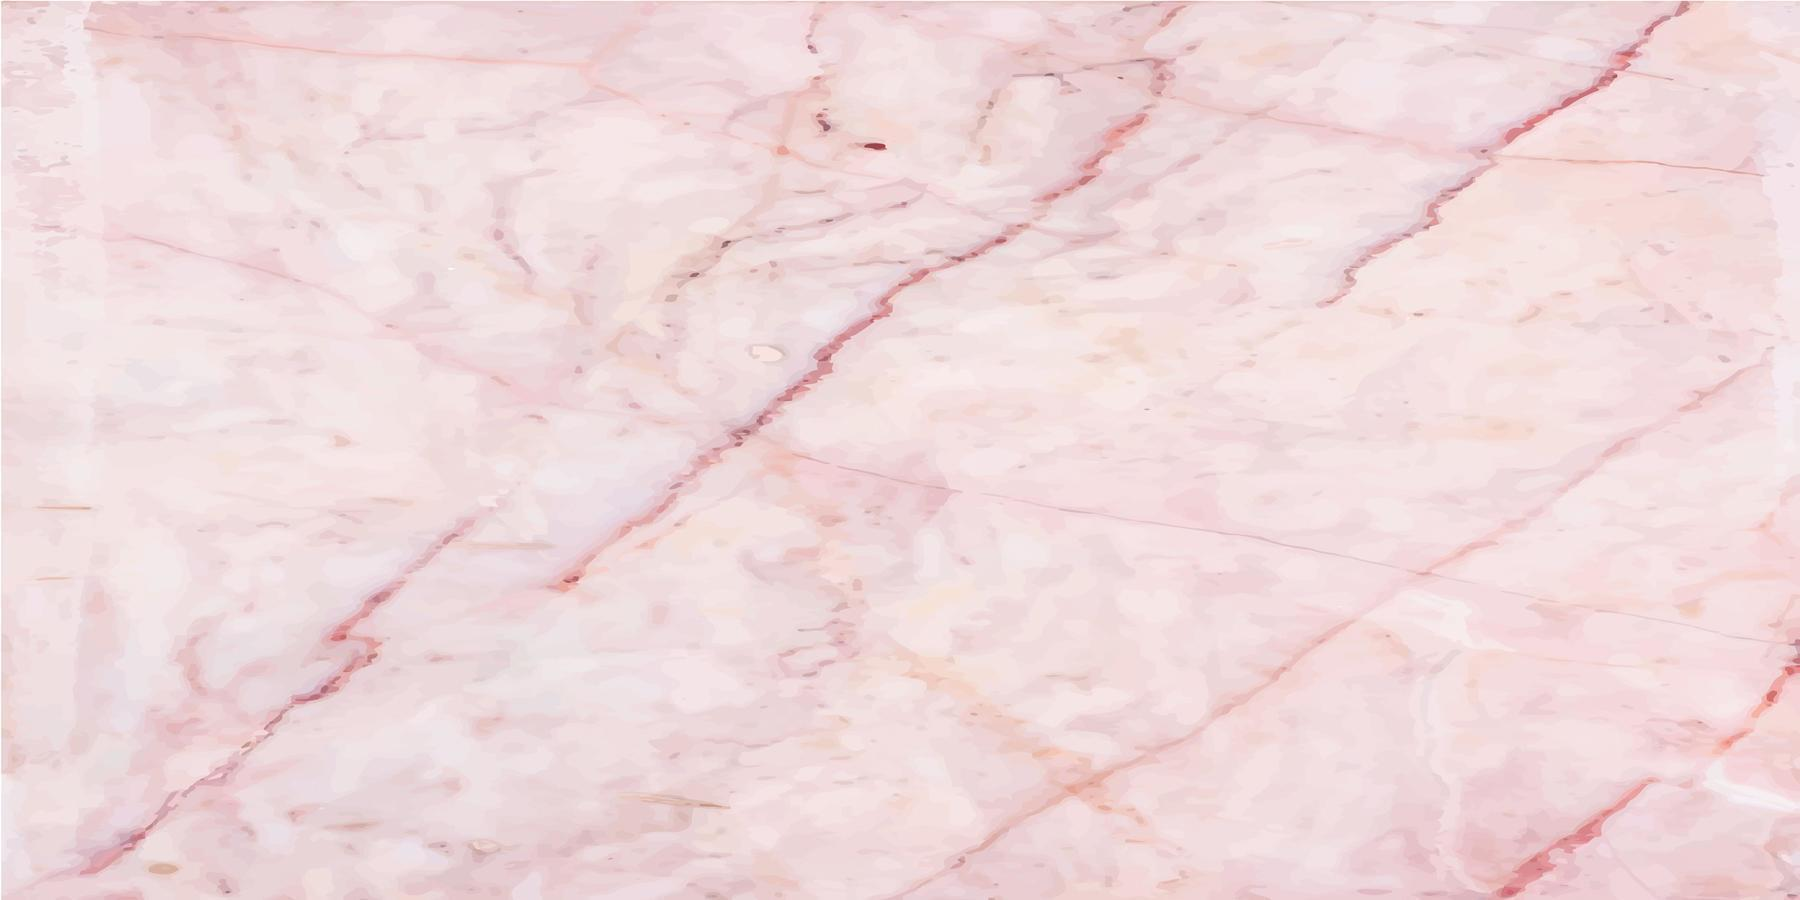 Natural Stone Texture Marble Background vector